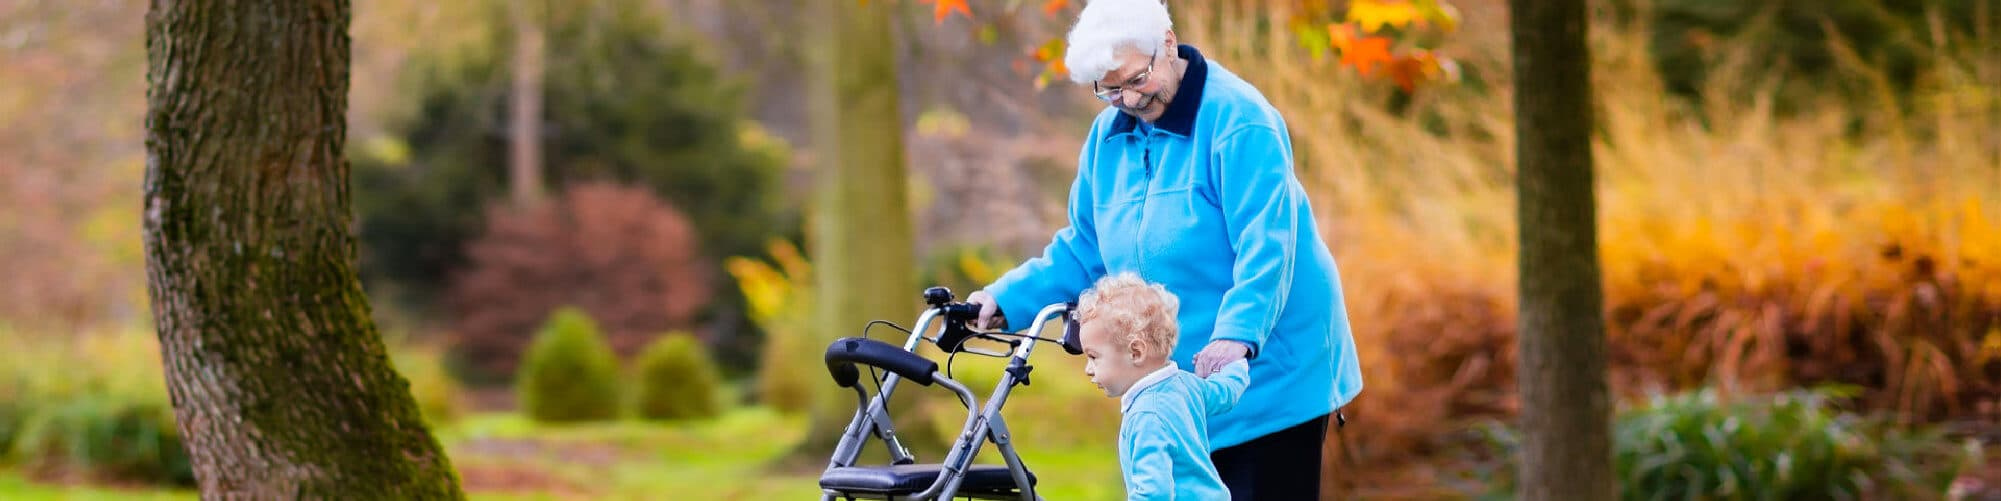 Elderly Woman with baby at hte park